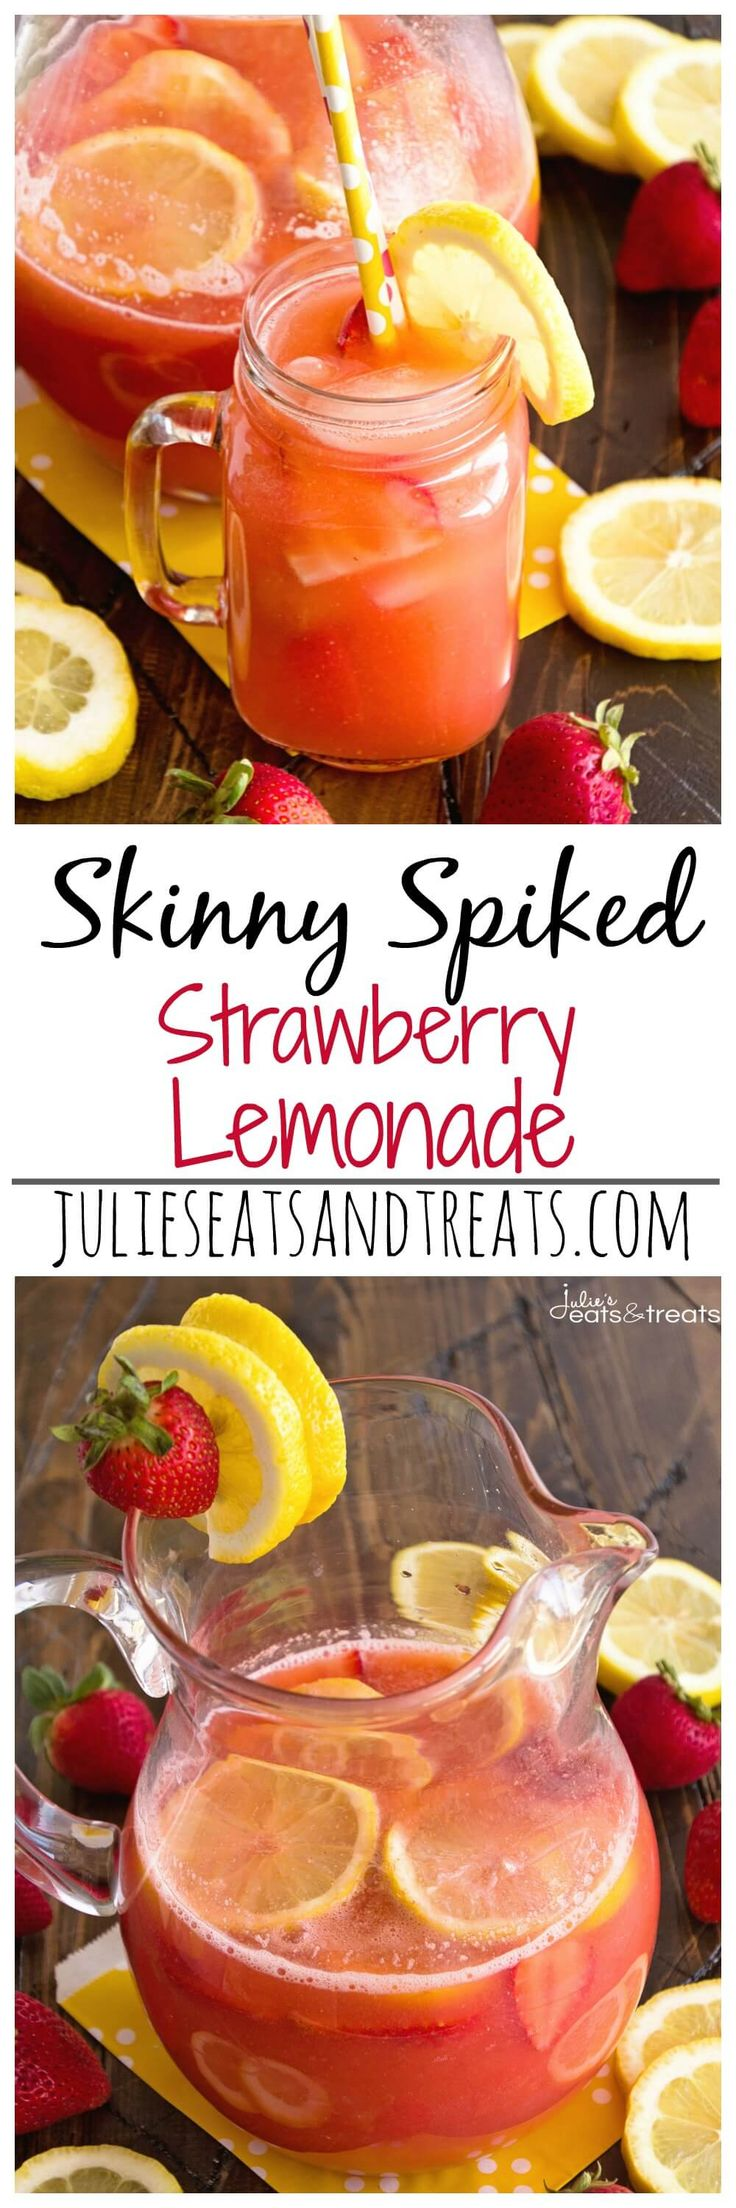 Skinny Spiked Strawberry Lemonade ~ Delicious Strawberry Lemonade Recipe Sweetened with Truvia and Spiked with Strawberry Lemonade Vodka! ~ http://www.julieseatsandtreats.com